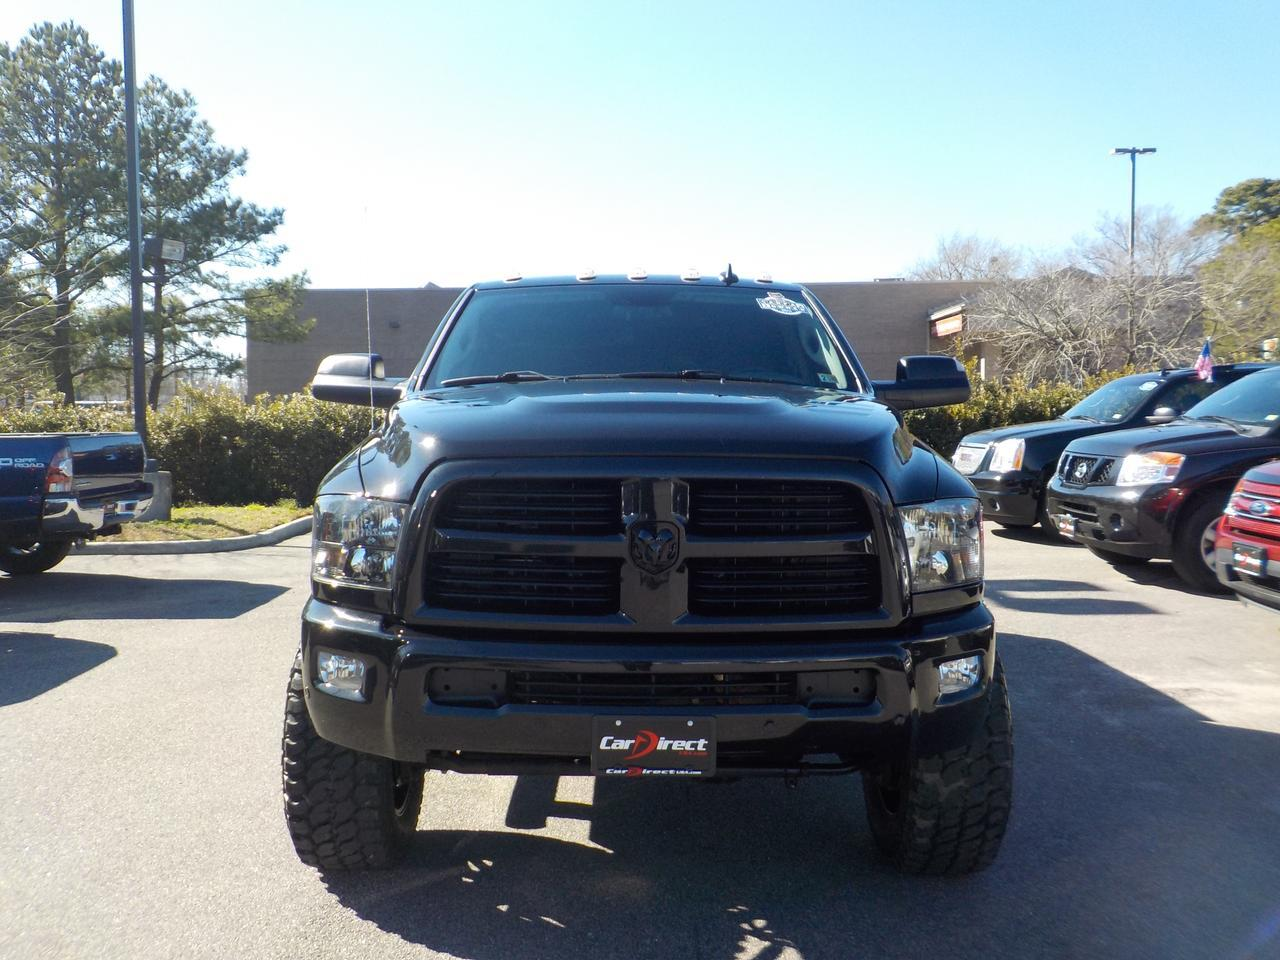 2017 RAM 3500 CREW CAB SLT 4X4, ONE OWNER, ALPINE SOUND SYSTEM, HEATED SEATS, TOW PACKAGE, ONLY 49K MILES! Virginia Beach VA